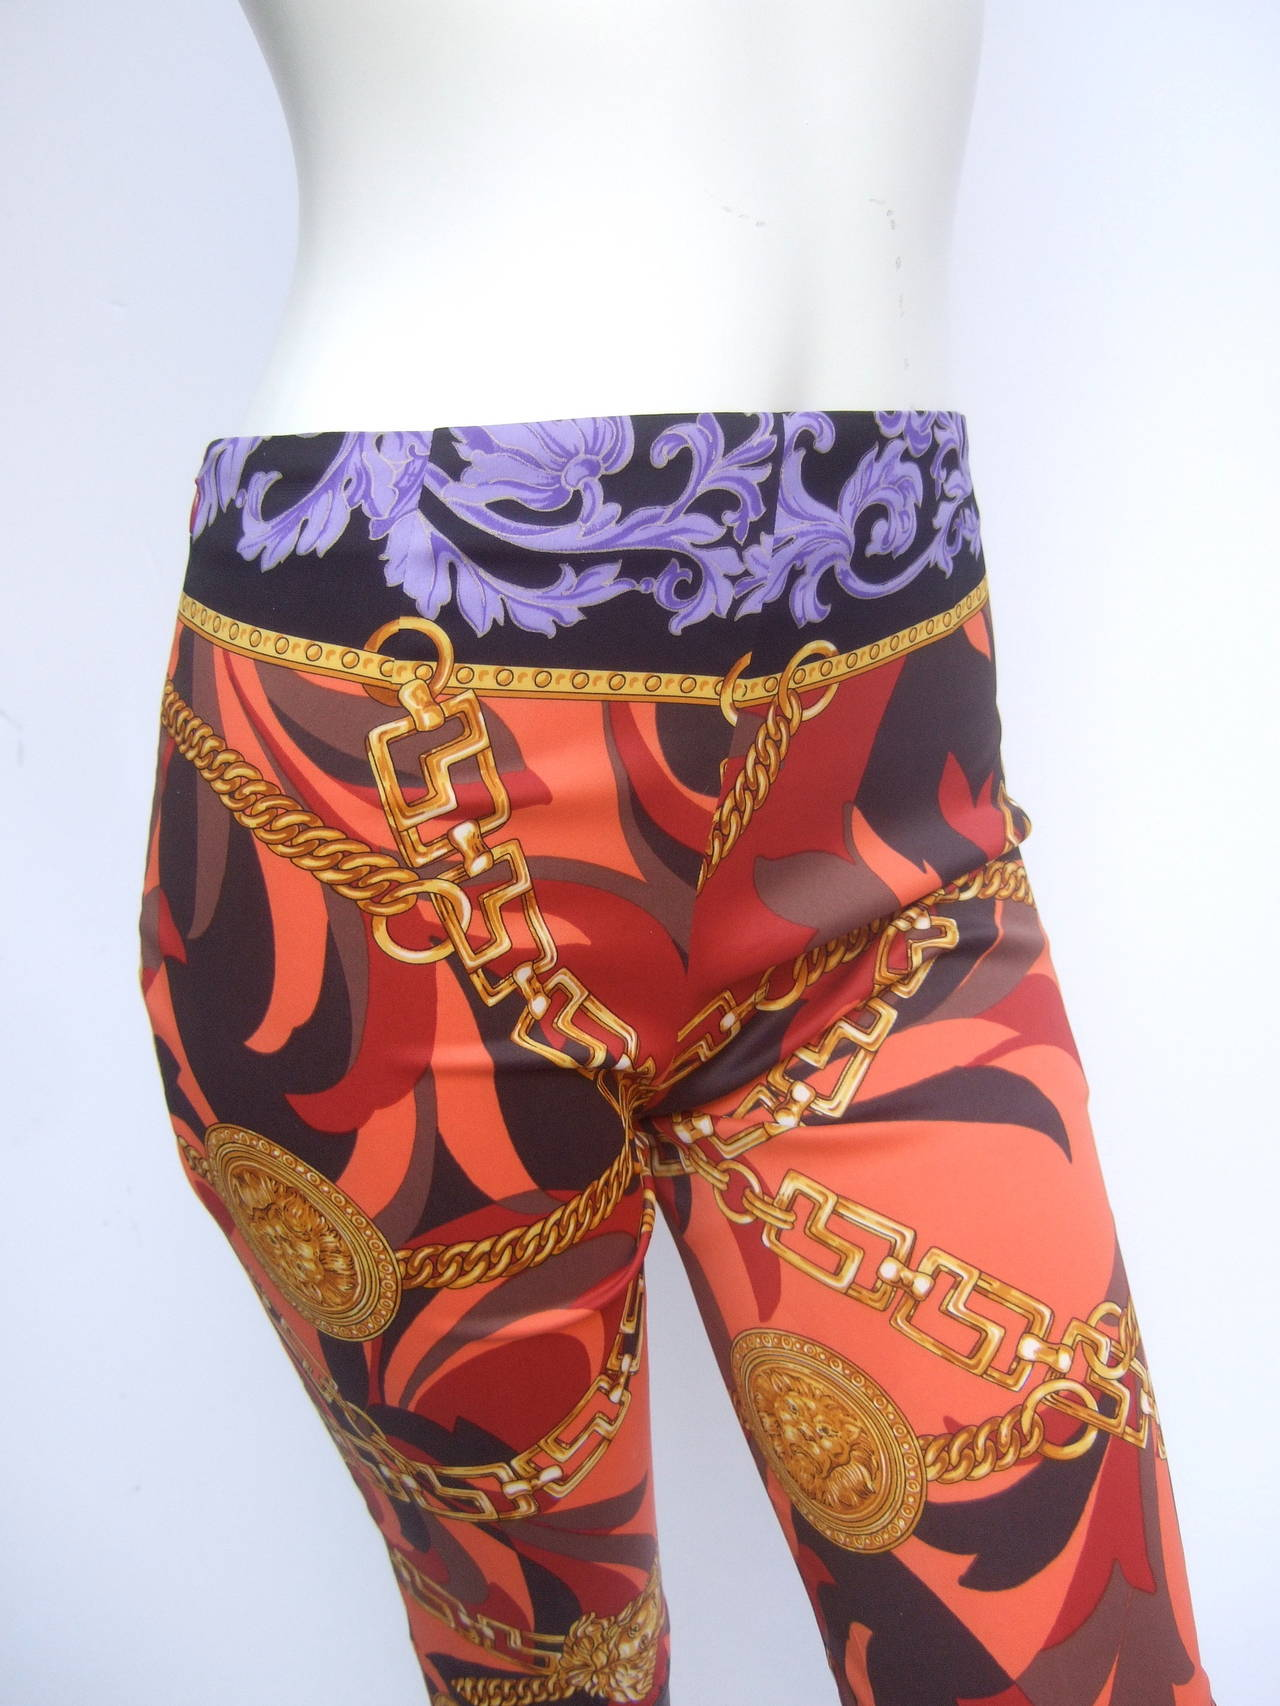 Versace Iconic Medusa Graphic Print Stretch Jeans Size 28 3